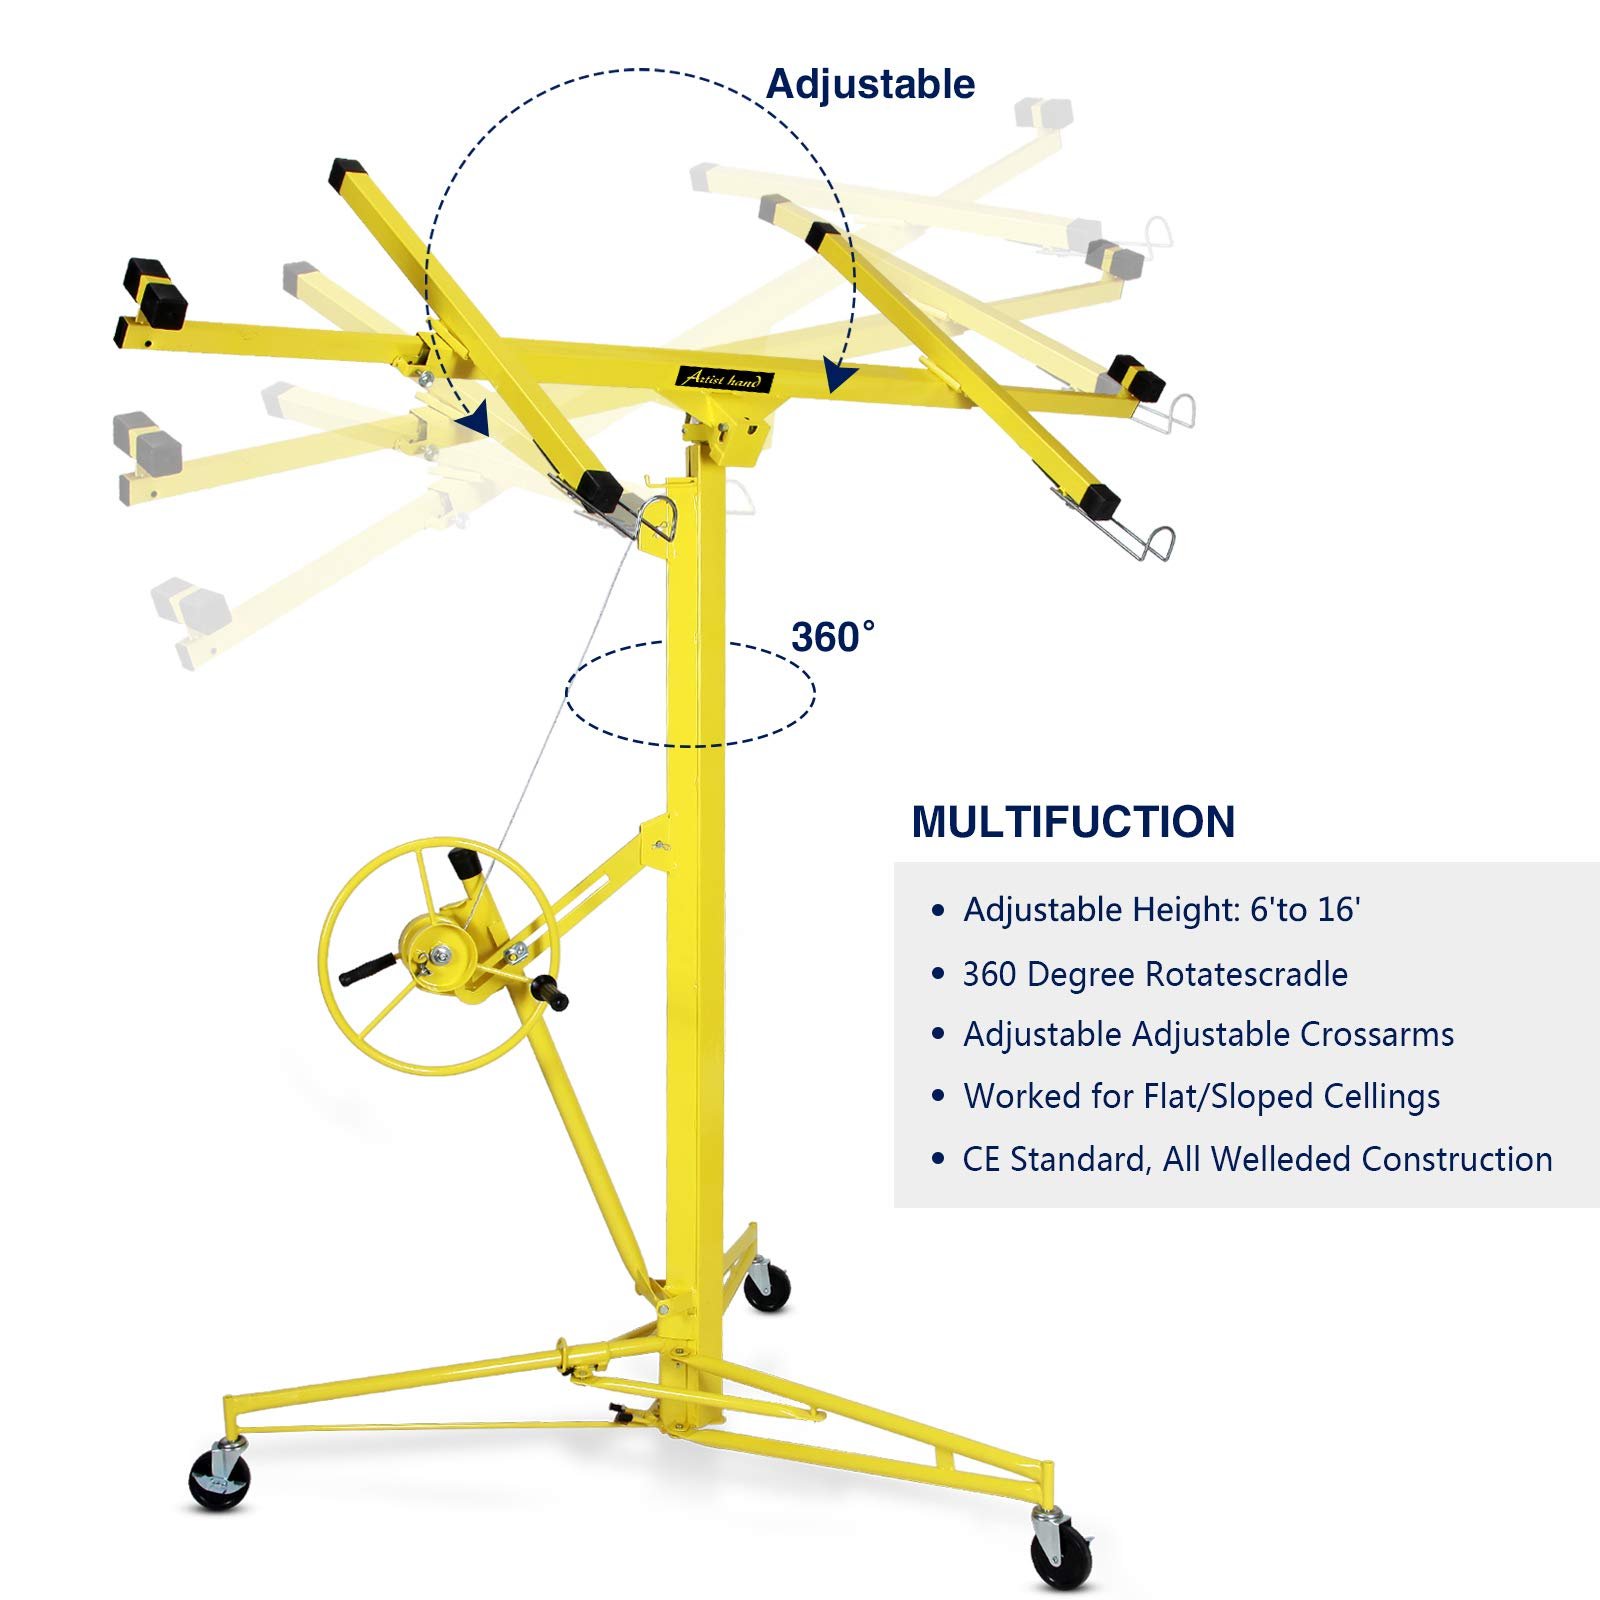 Idealchoiceproduct 16' Drywall Lift Rolling Panel Hoist Jack Lifter Construction Caster Wheels Lockable Tool Yellow by Idealchoiceproduct (Image #2)